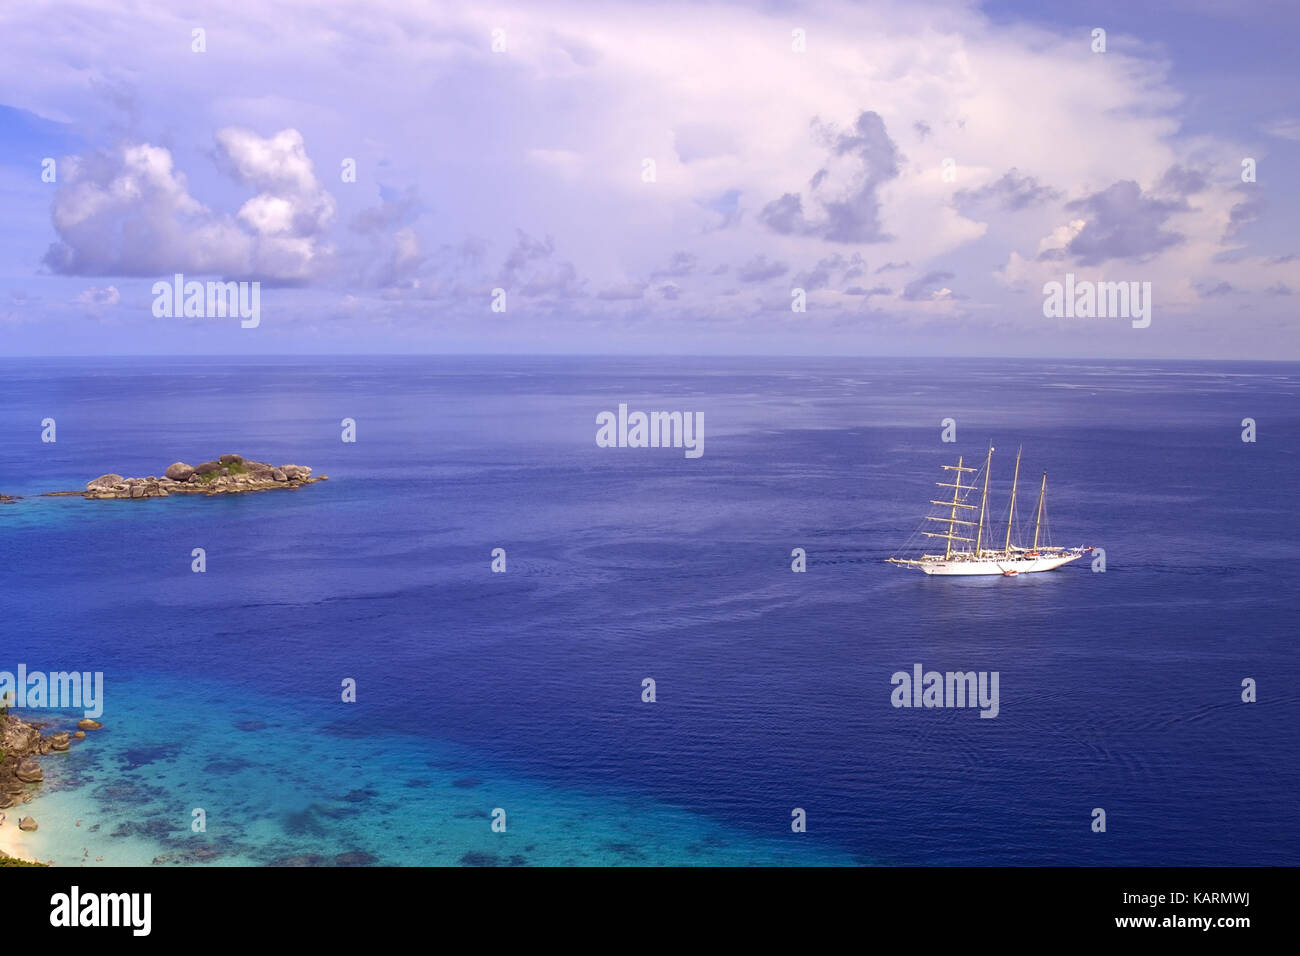 Similan of Iceland in the Andaman Sea and the Ship star flyer in background, Similan Islands in the Andaman Sea - Stock Image